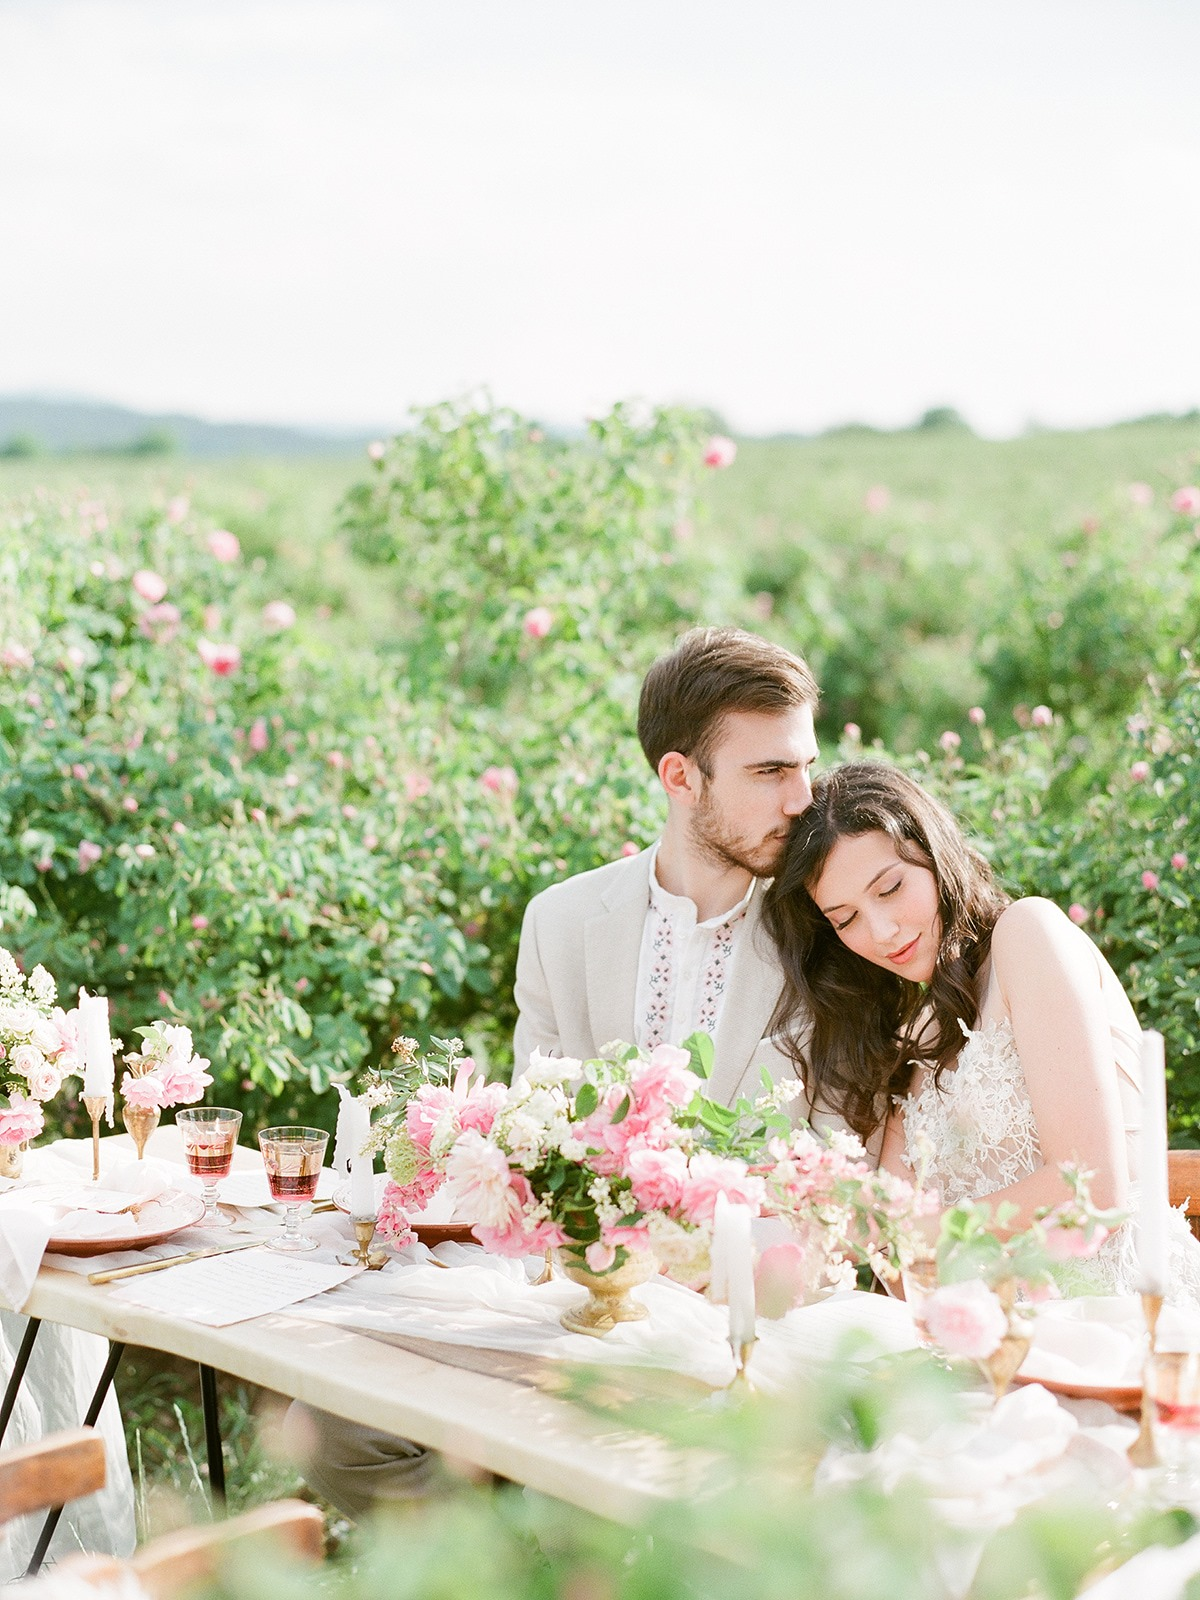 Pretty, pink, and romantic outdoor European wedding for 2019